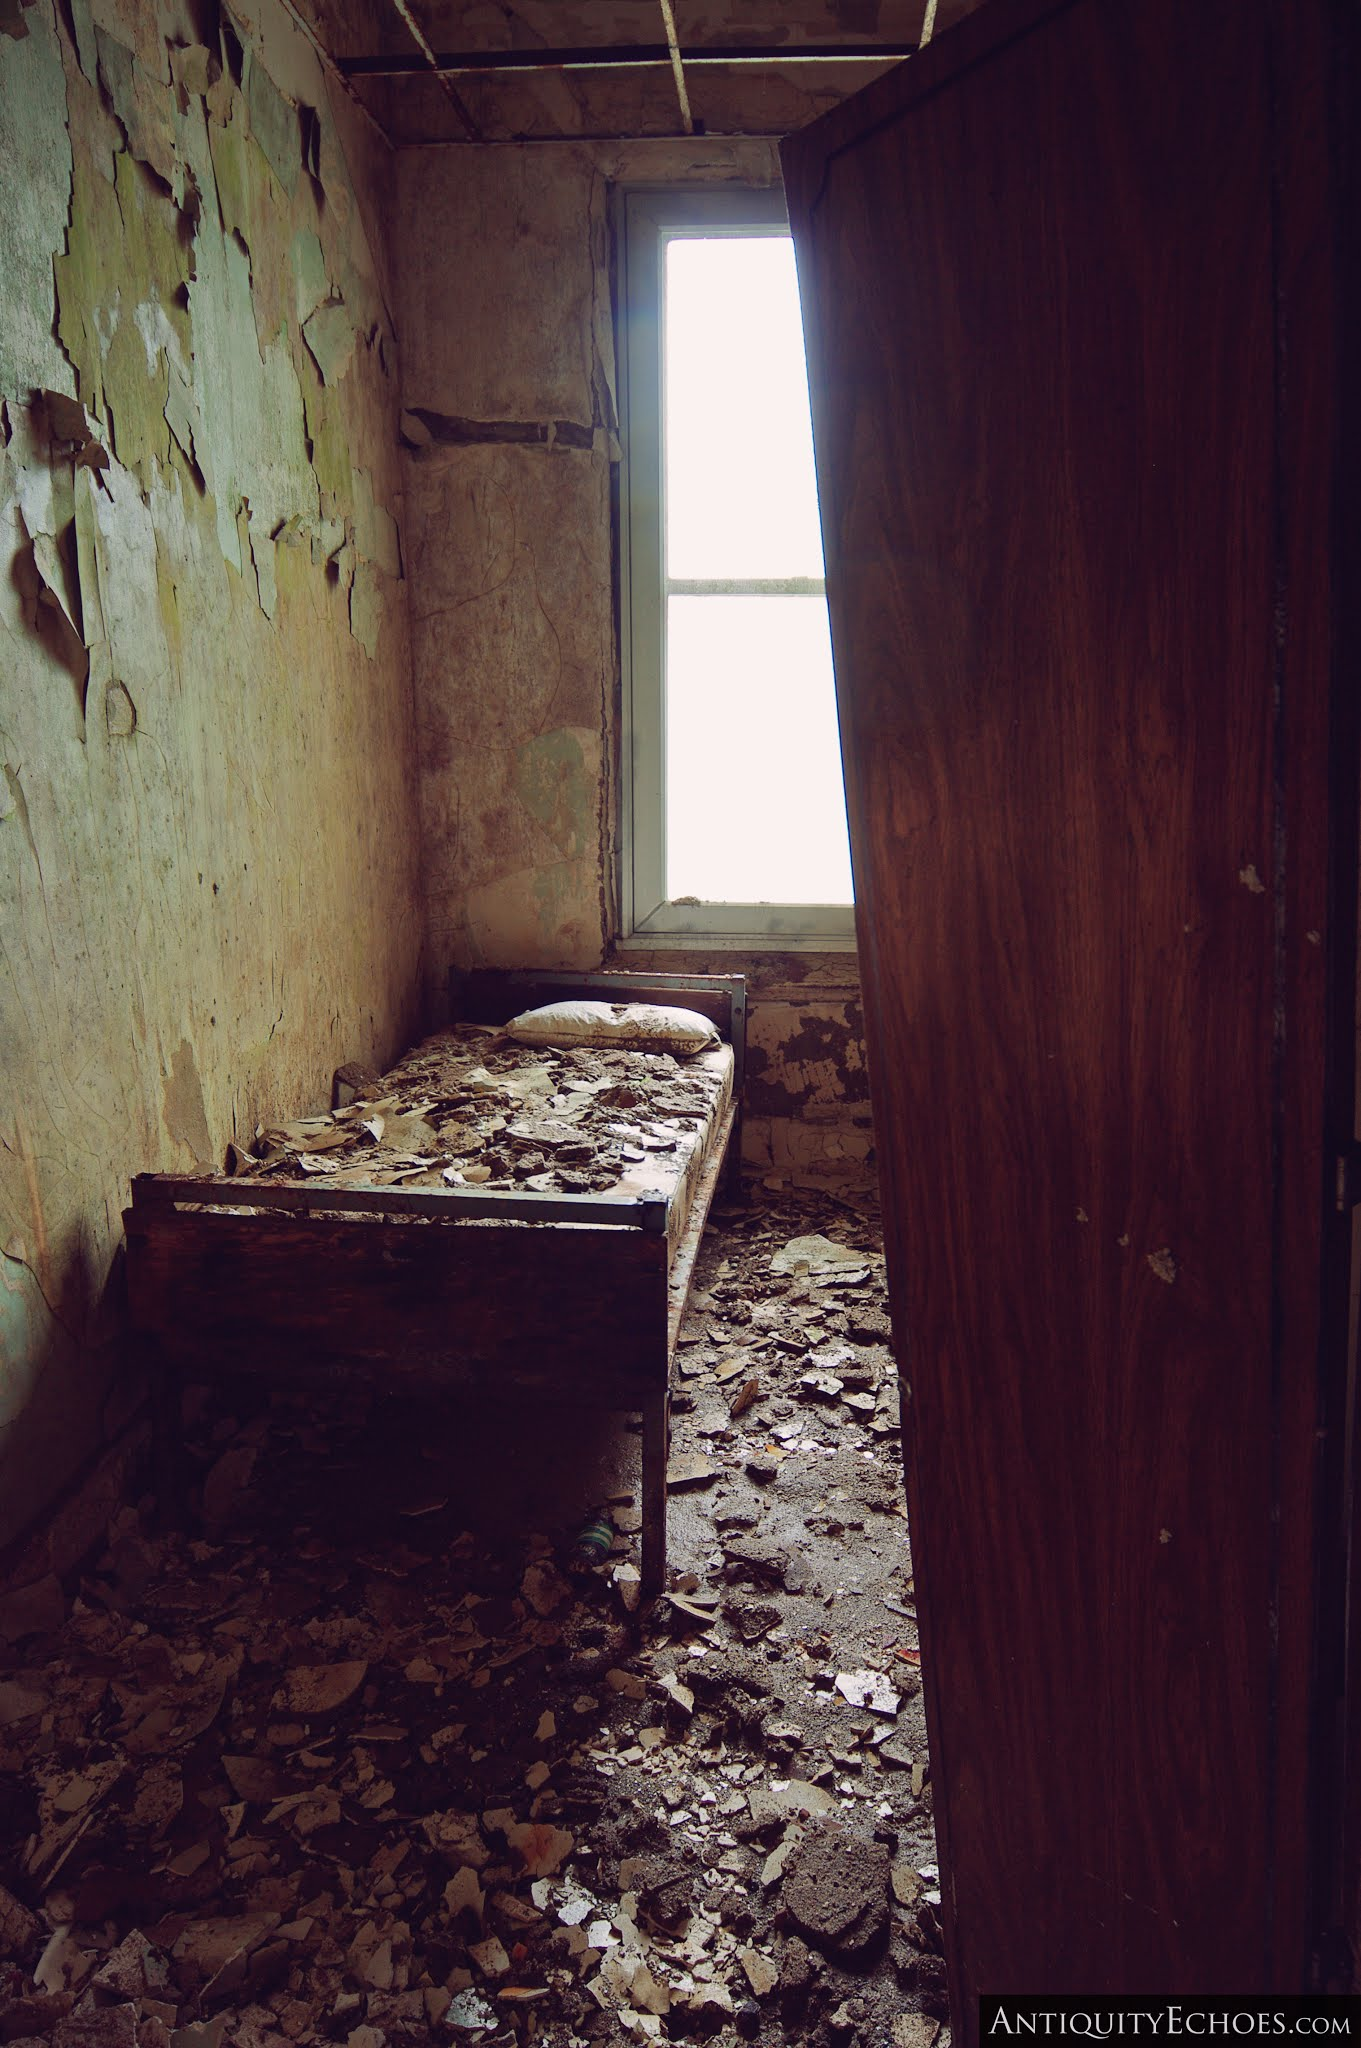 Overbrook Asylum - Rotting Bedroom